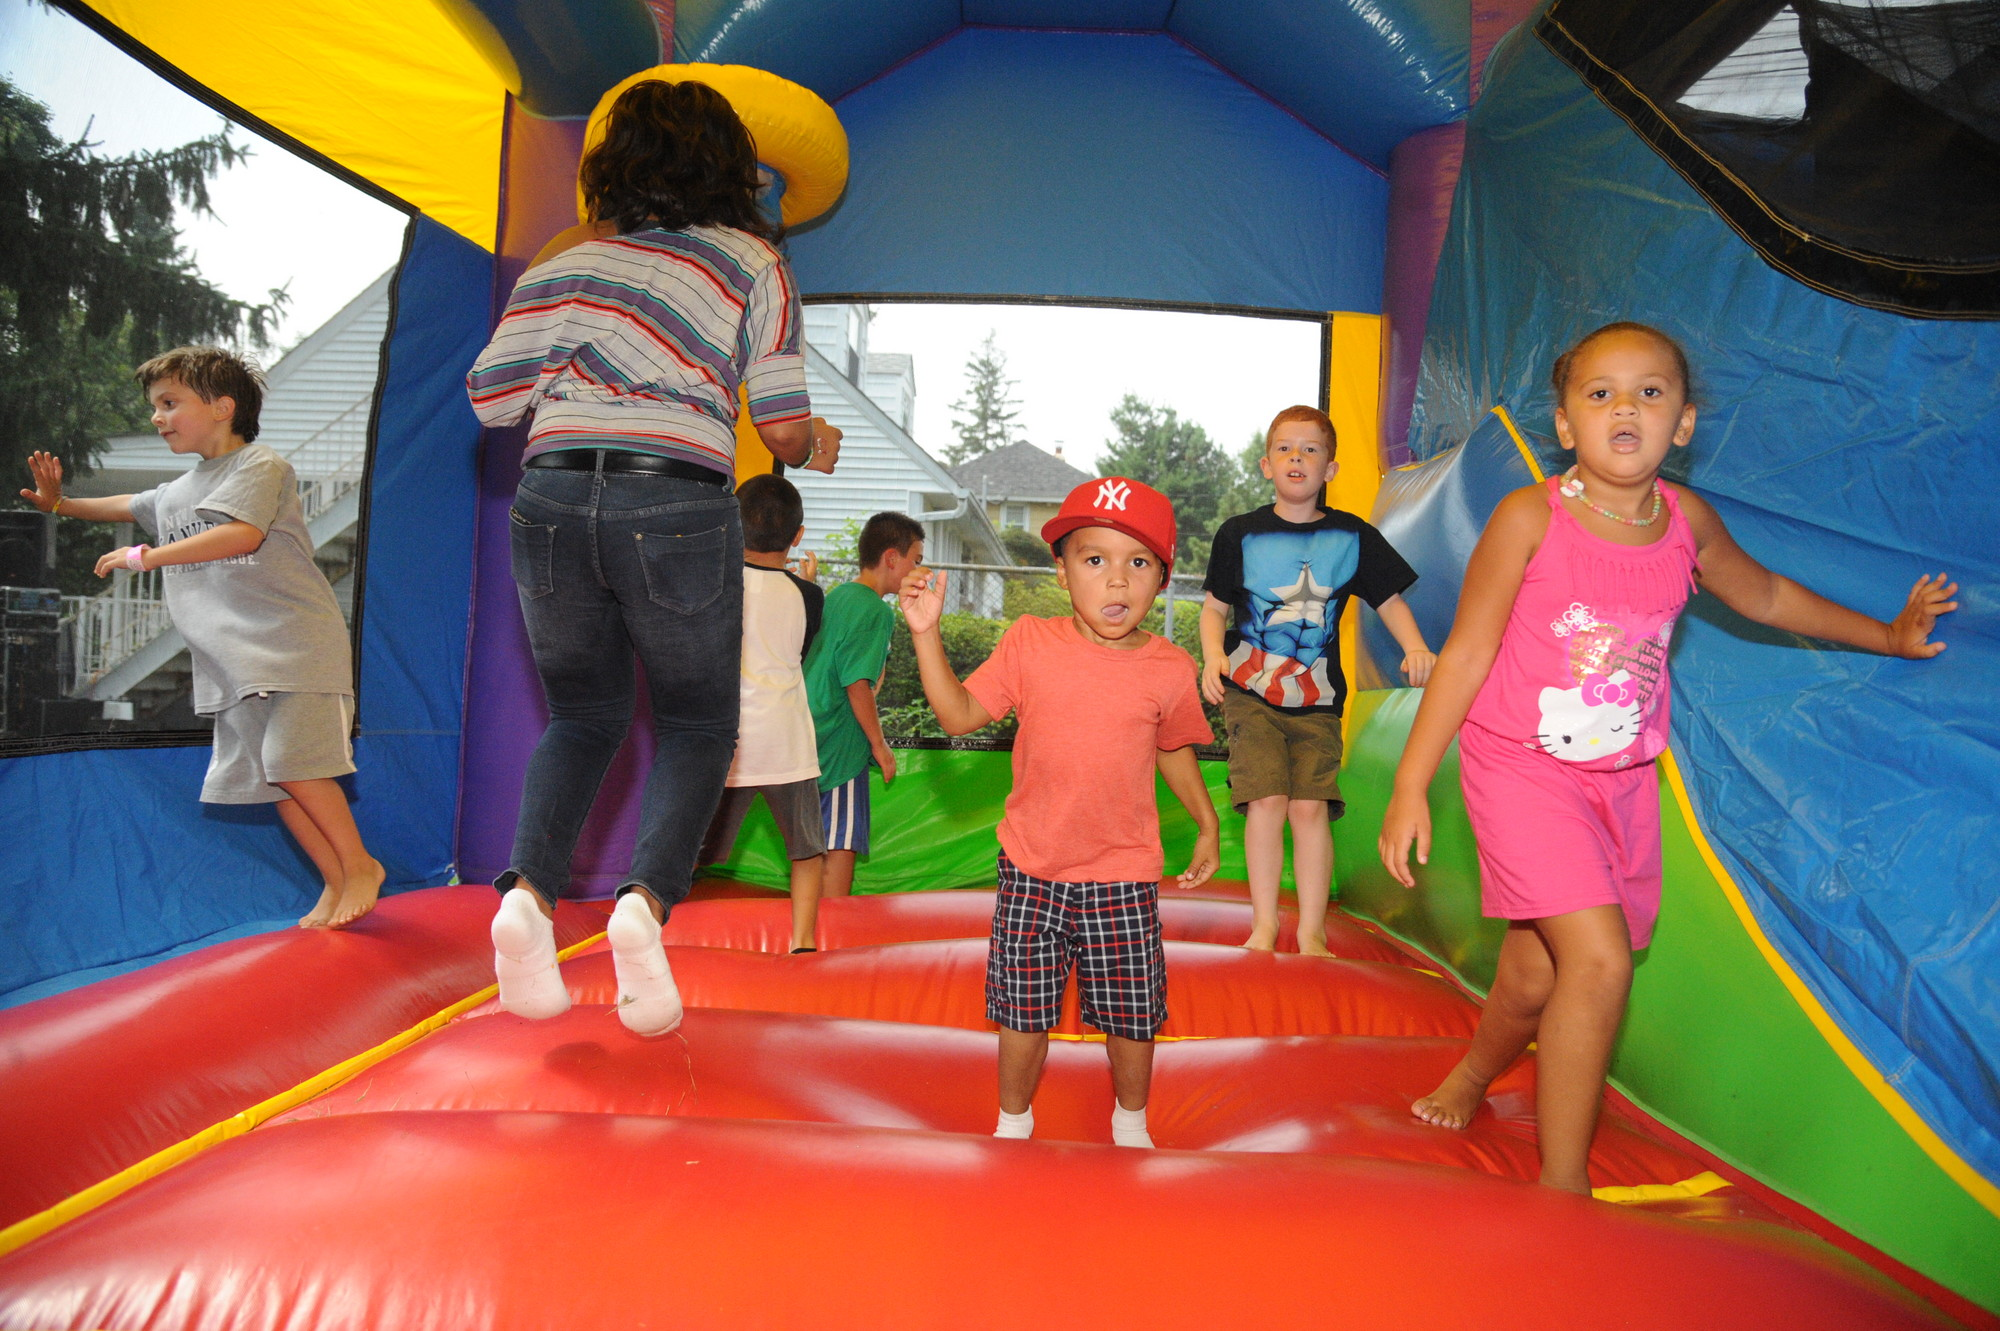 Seander Turman, 4, middle, and Julia Tabron, 6, enjoyed jumping around a bouncy castle, situated on the church's Green Avenue lawn.